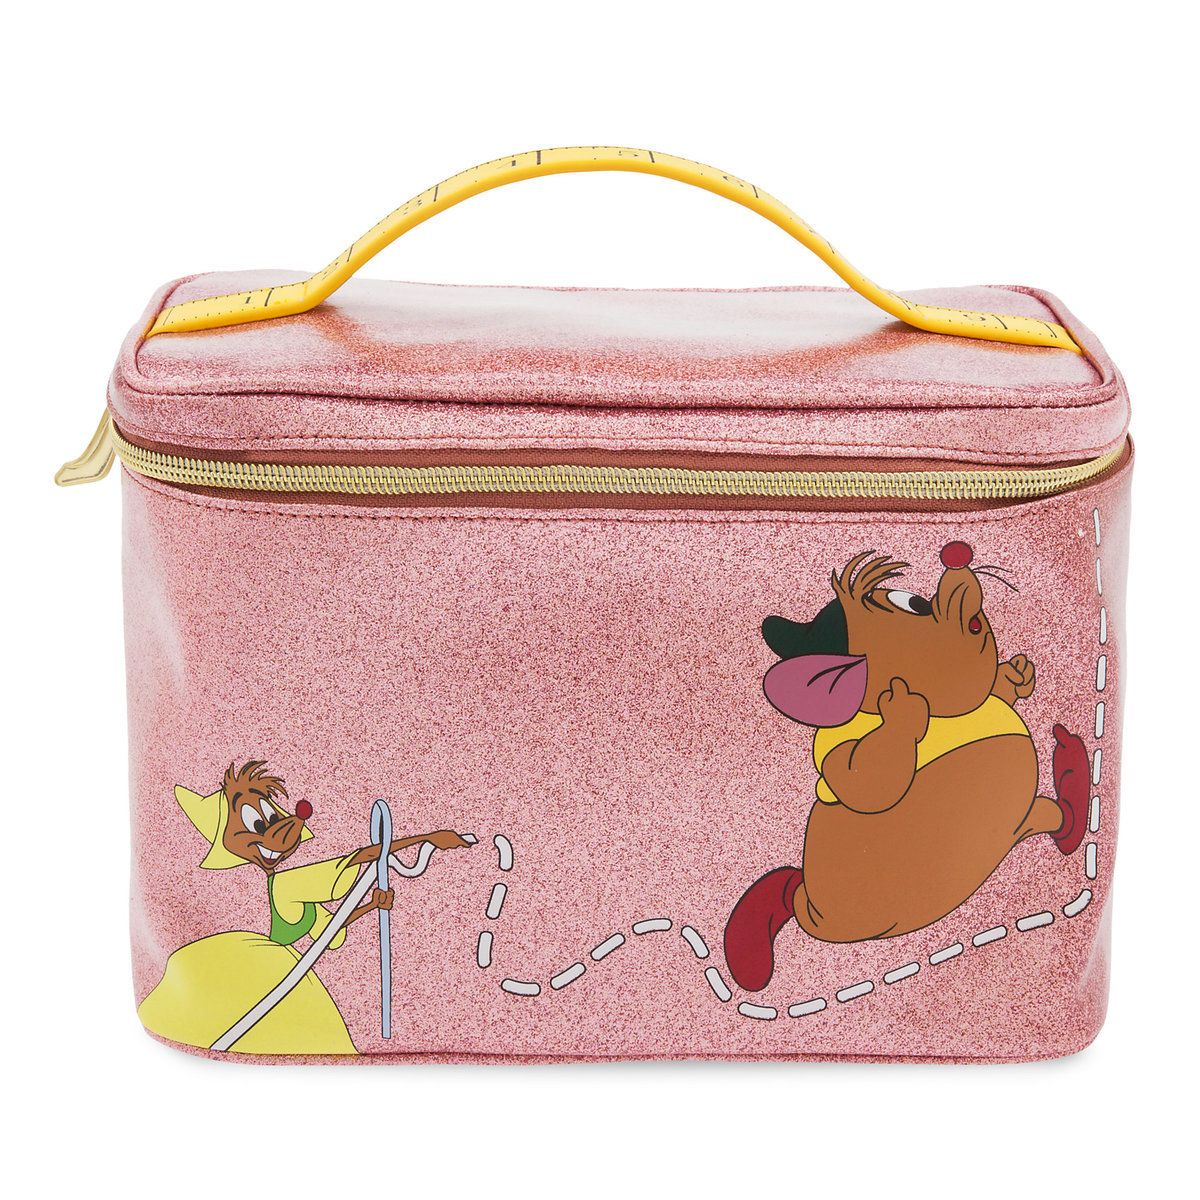 Magical New Danielle Nicole Bags Now On Disney